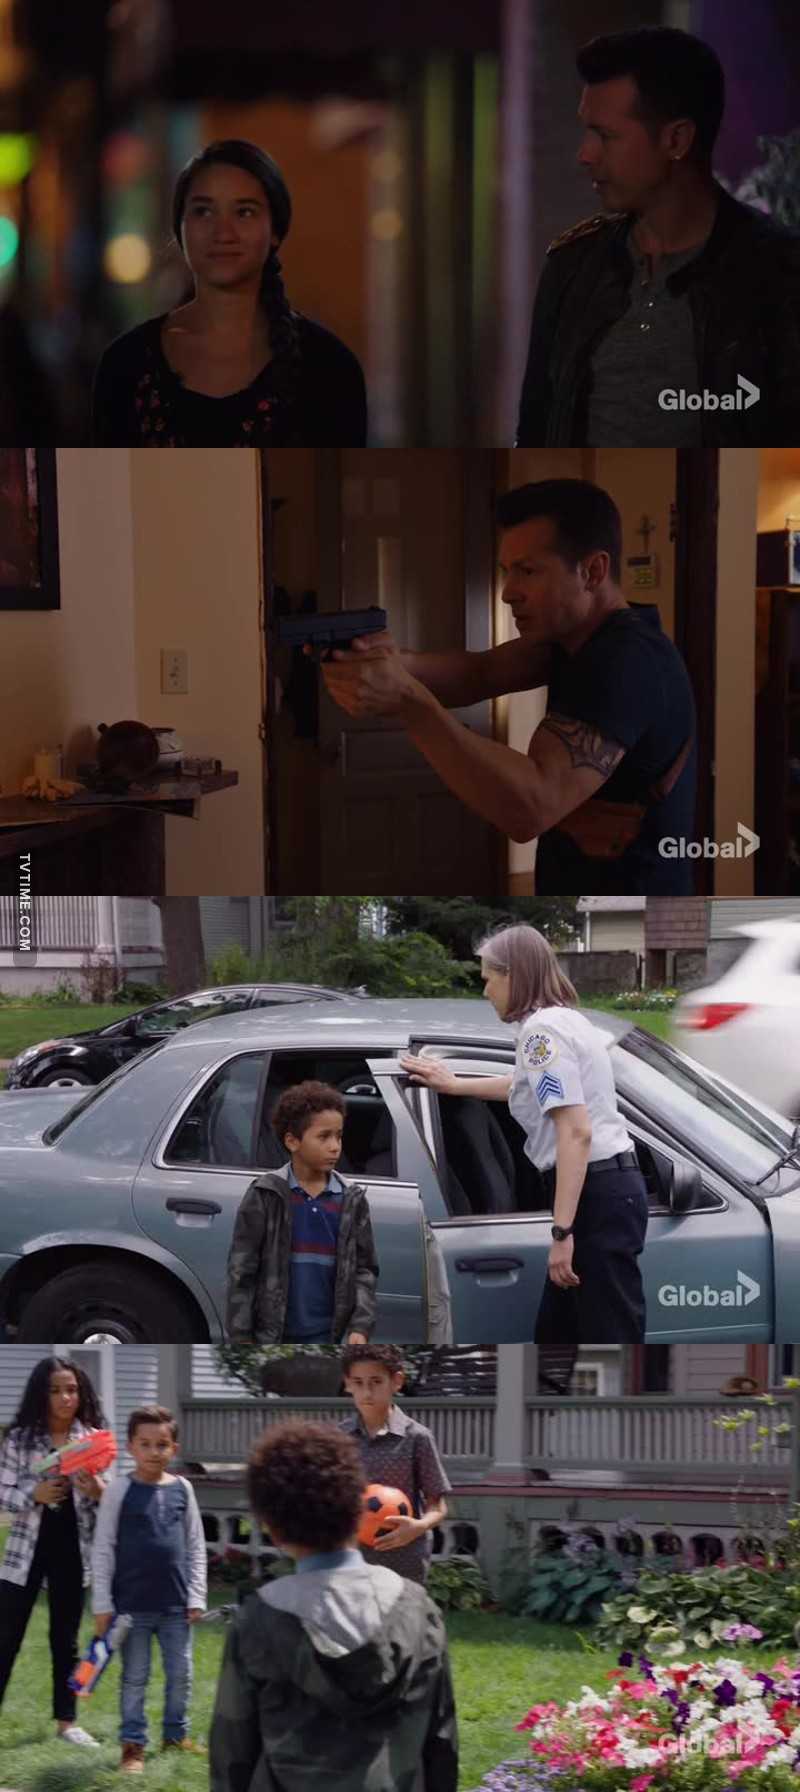 Great episode, felt so sorry for Antonio, he tried so hard to get justice by doing things the right way.. I was glad to see what happened to that bald dic at the end ....and that poor little boy had his whole world turned upside down 😢😢😢